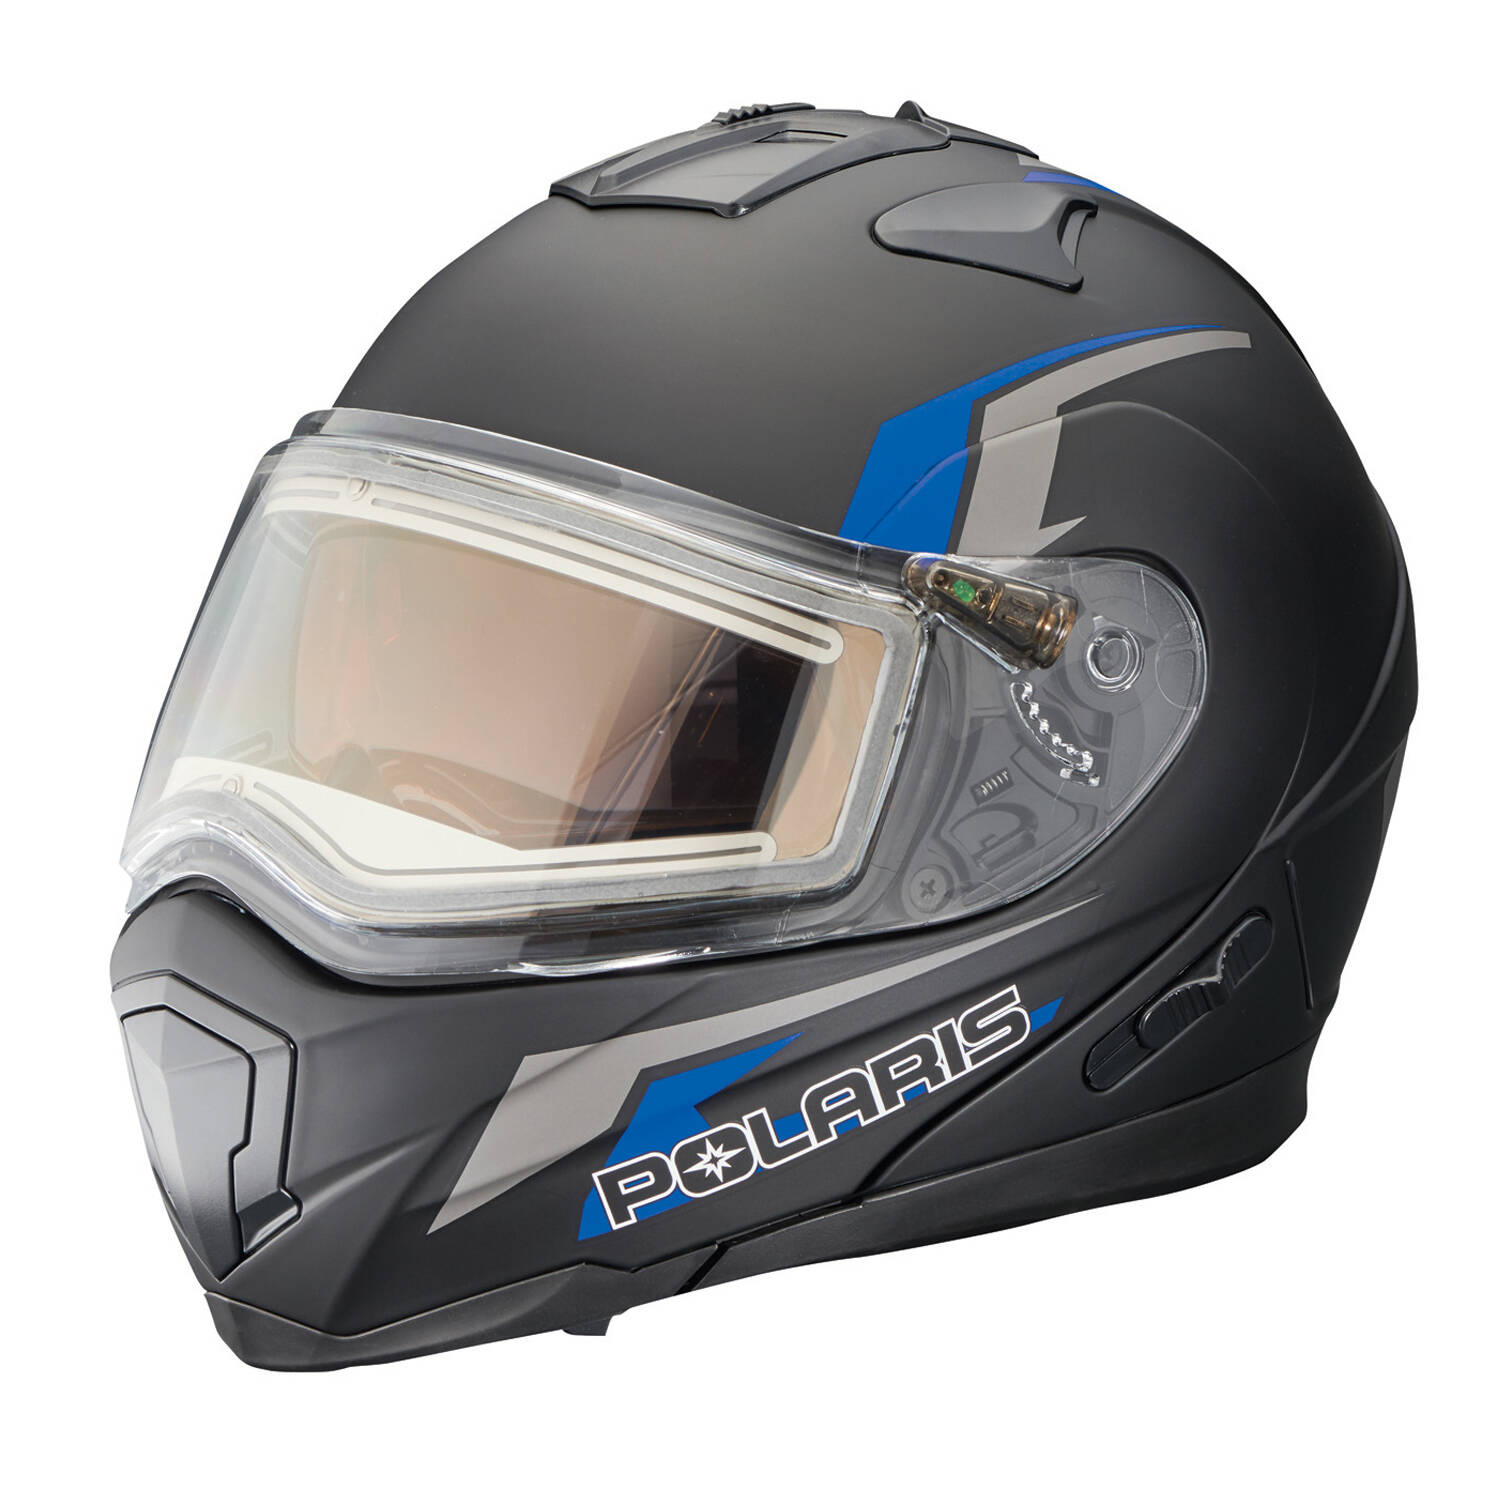 Modular 1.5 Adult Helmet with Electric Shield, Black/Blue